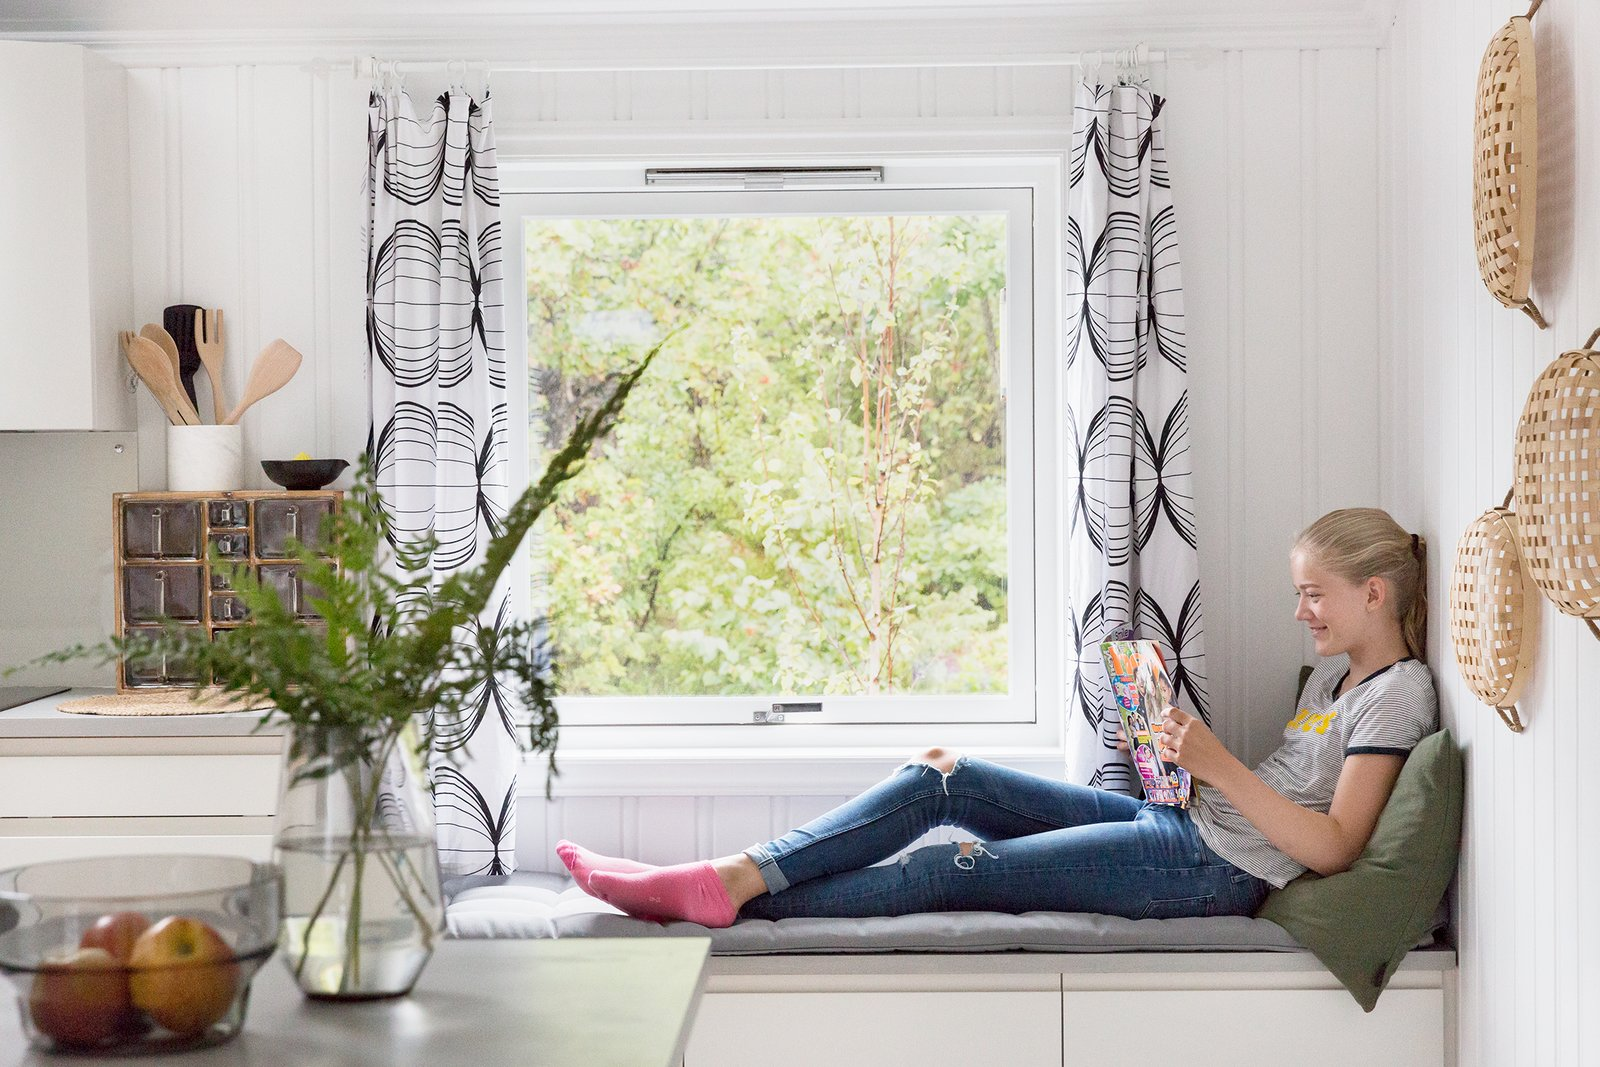 A reading bench next to the kitchen counter.